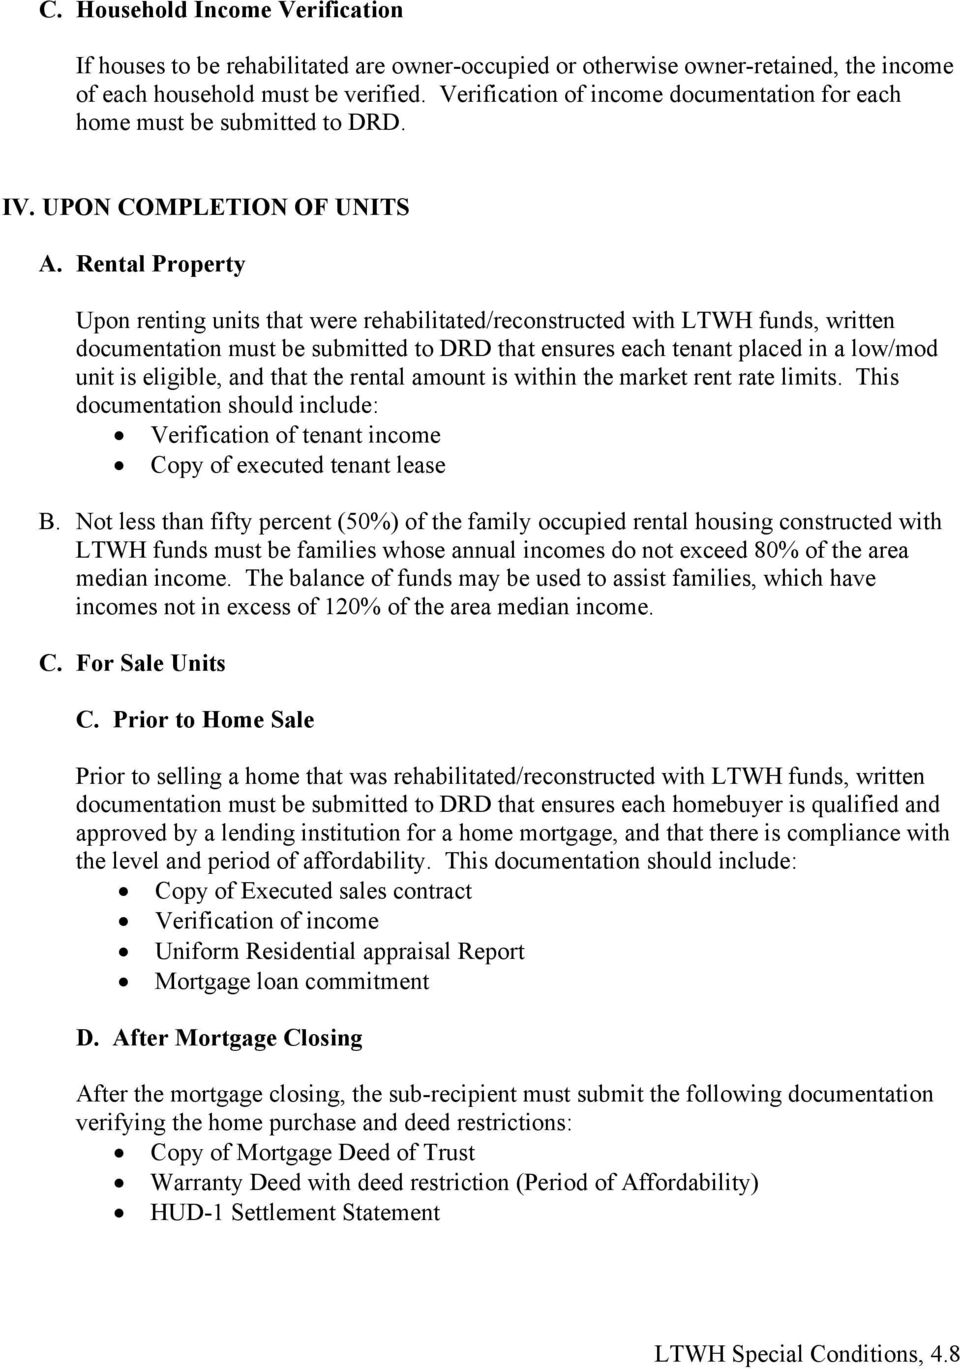 Rental Property Upon renting units that were rehabilitated/reconstructed with LTWH funds, written documentation must be submitted to DRD that ensures each tenant placed in a low/mod unit is eligible,